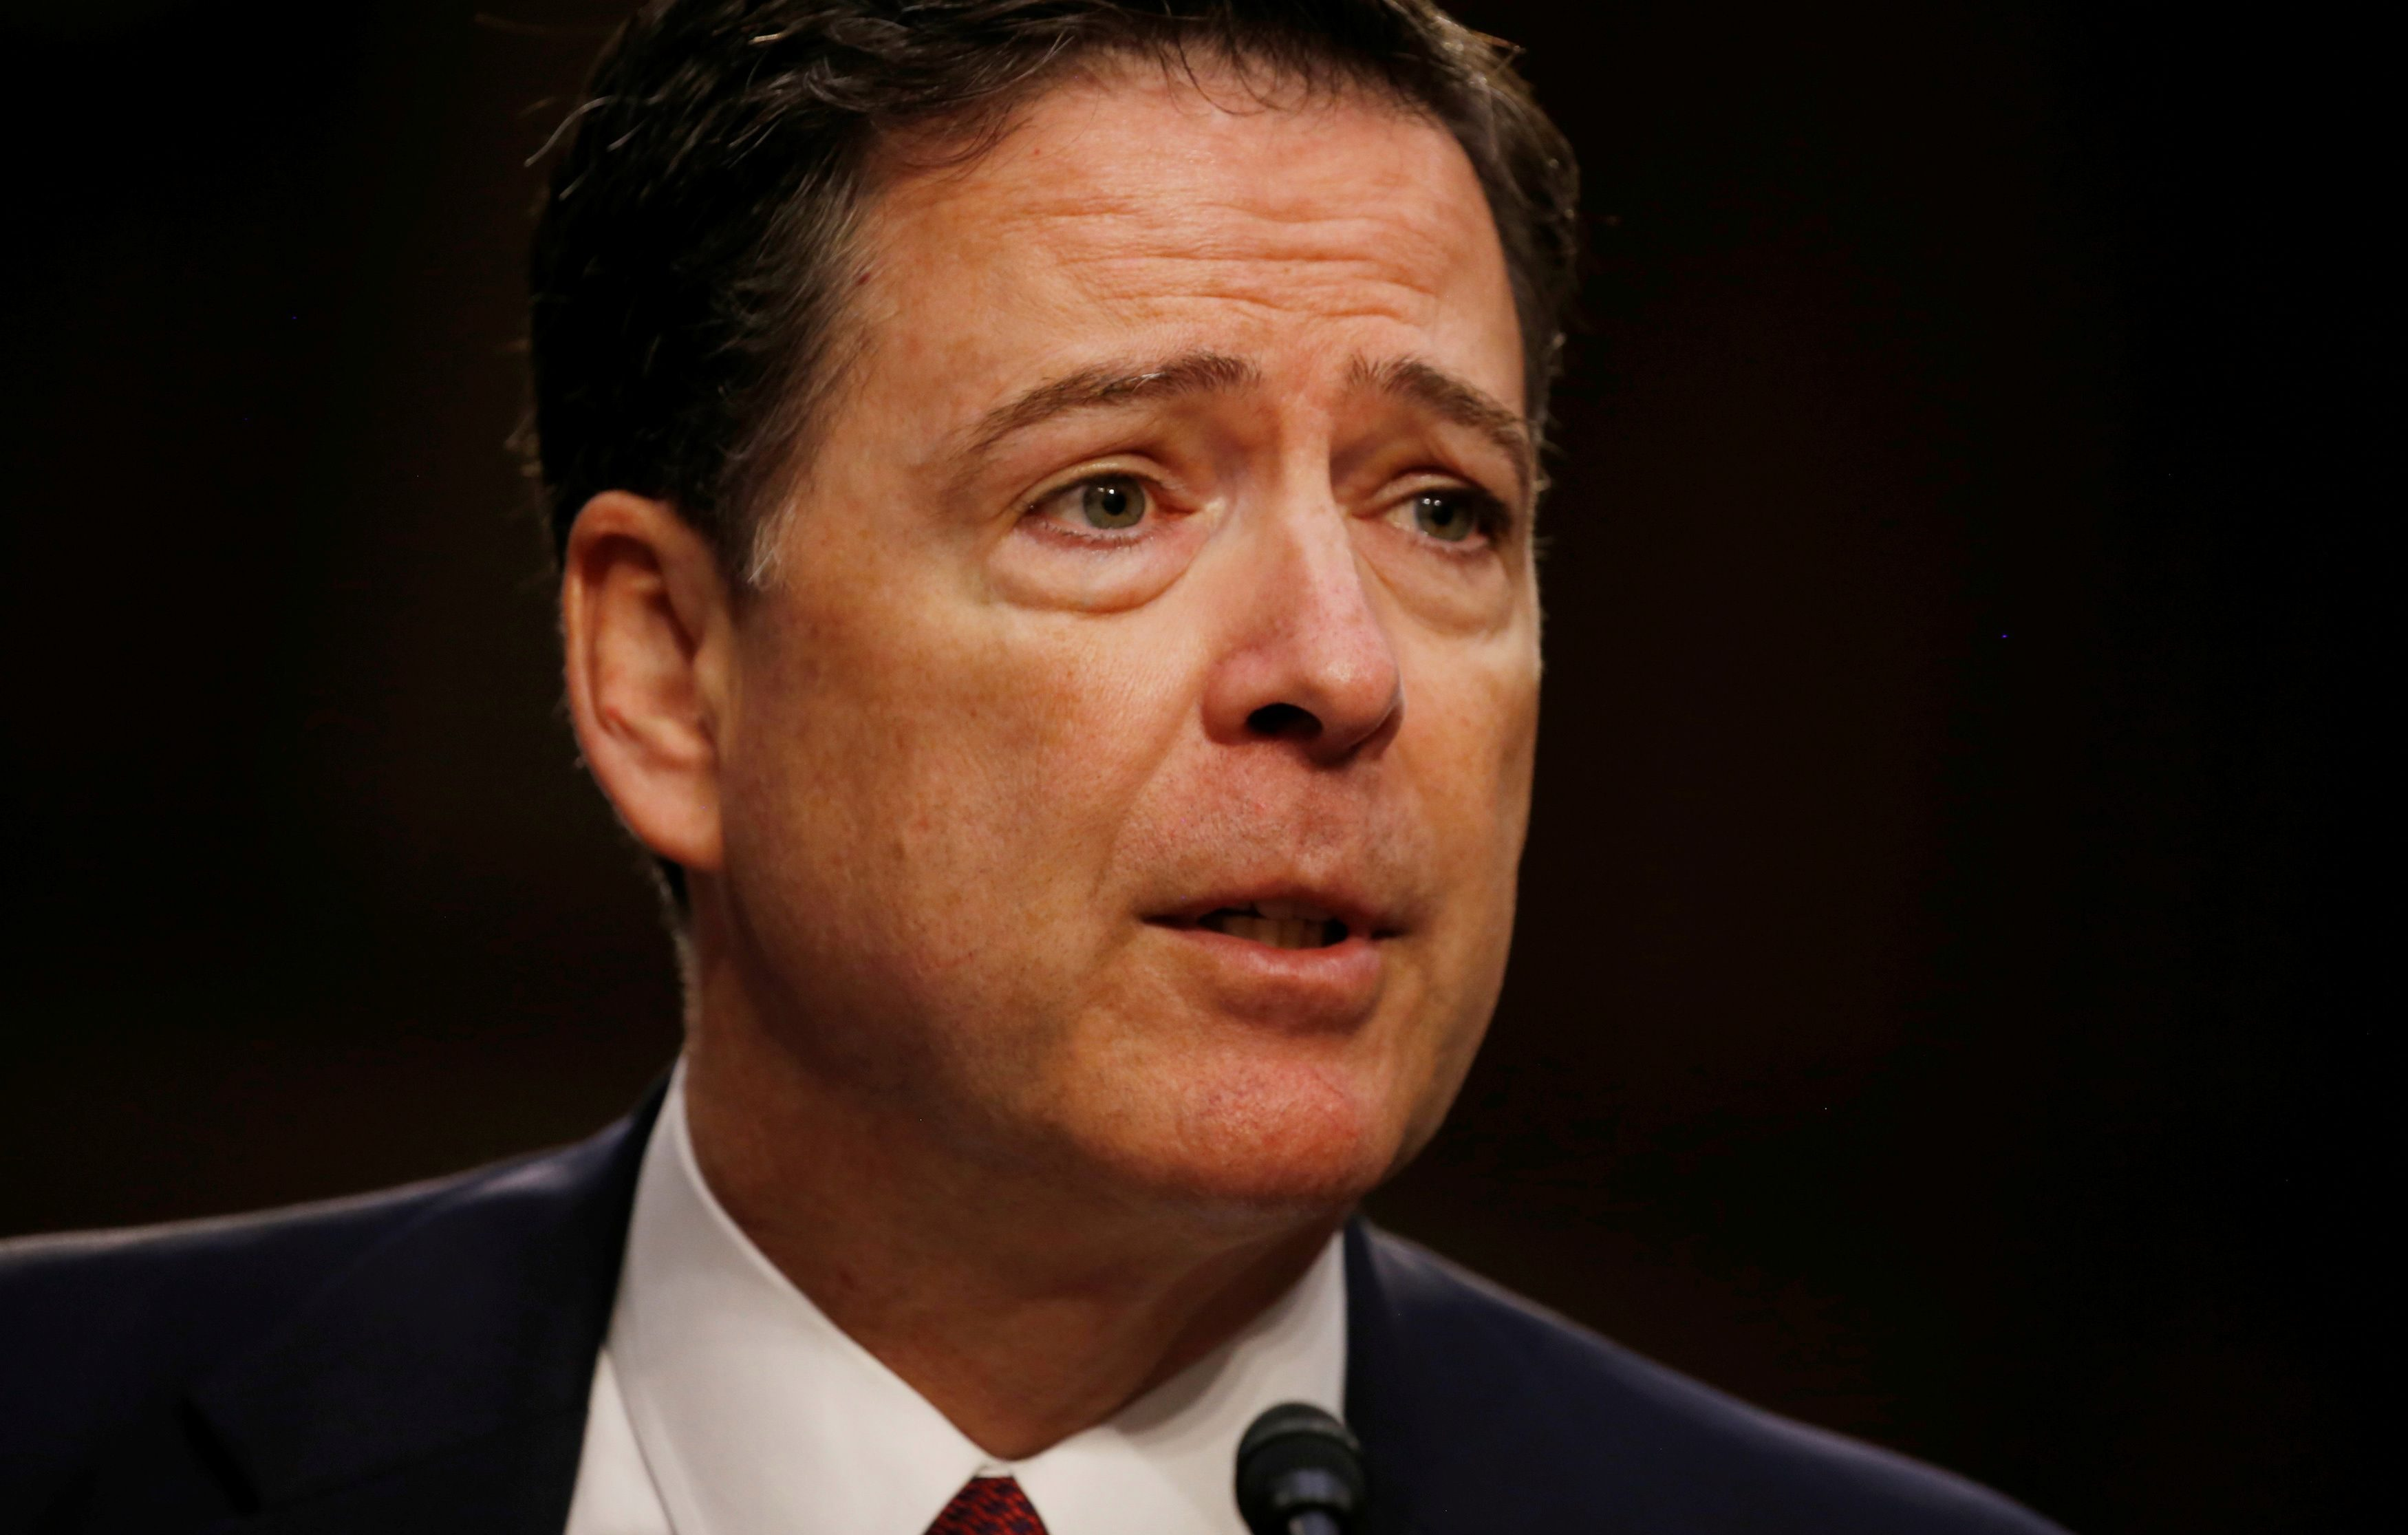 Former FBI Director James Comey testifies before a Senate Intelligence Committee hearing on Russia's alleged interference in the 2016 U.S. presidential election on Capitol Hill in Washington, U.S., June 8, 2017.   REUTERS/Jonathan Ernst/File Photo - RC1A34315600